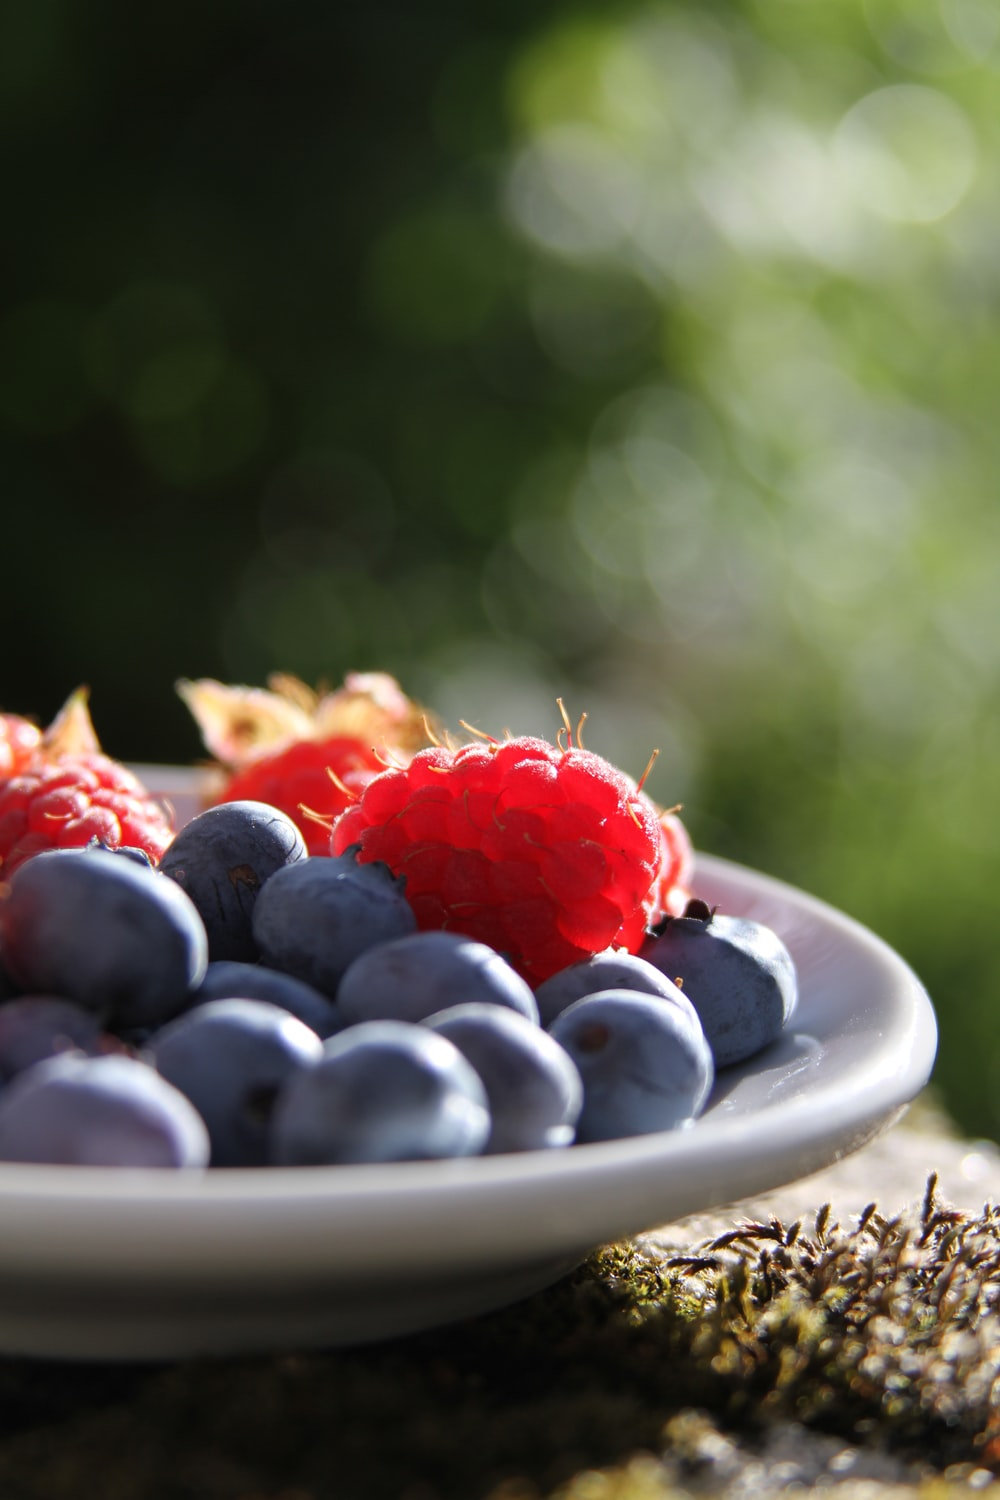 selective focus of blueberries and raspberries on bowl